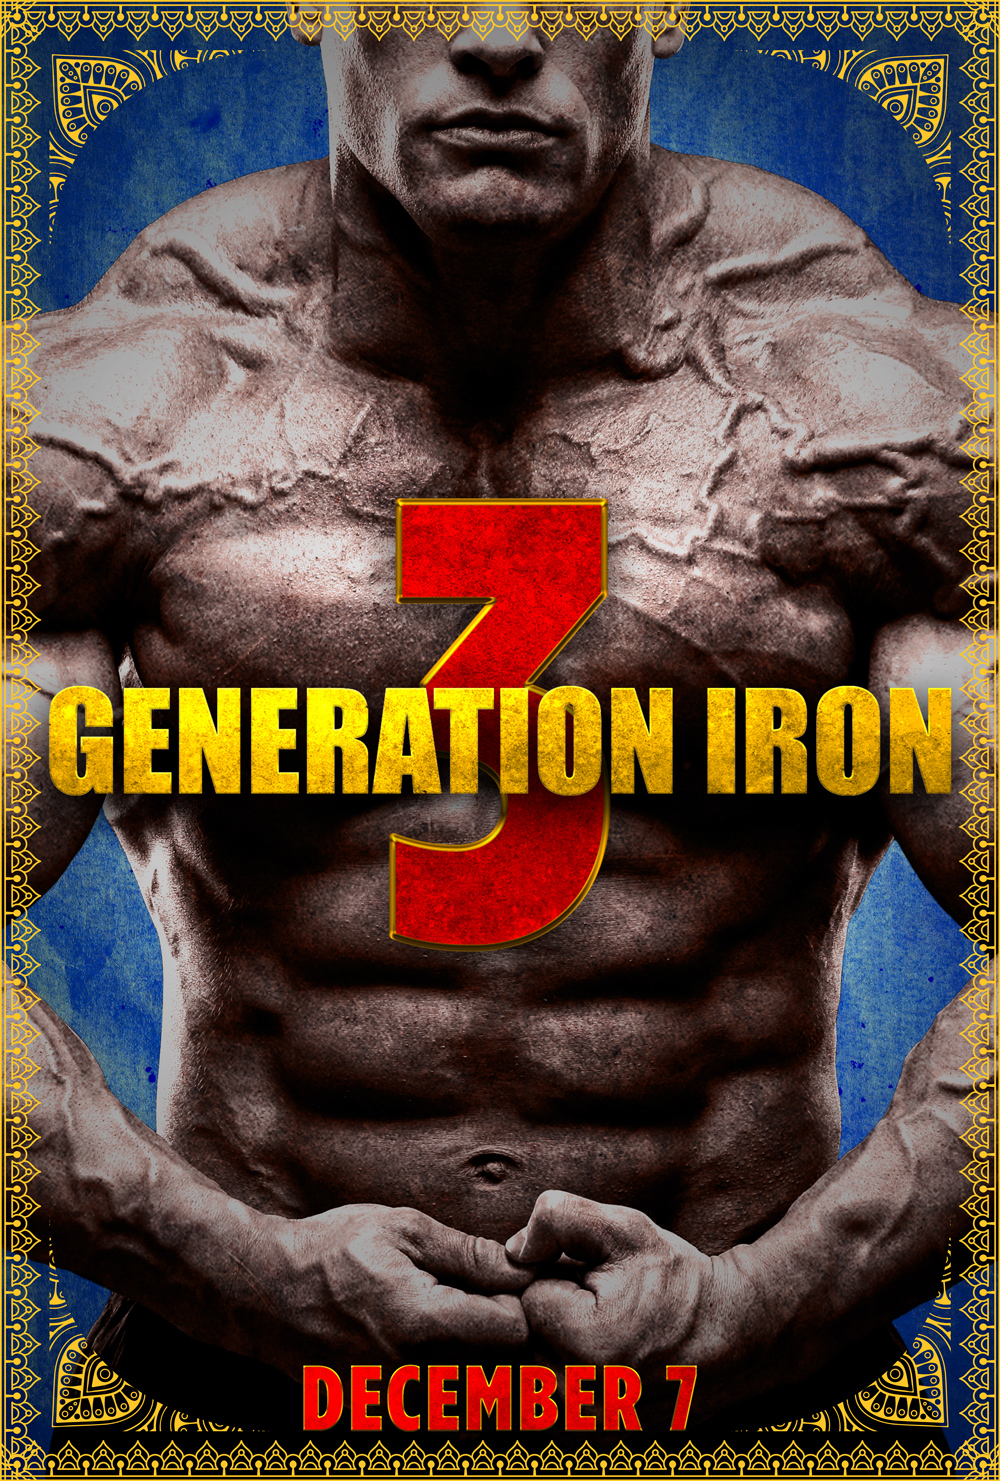 Generation Iron 3 Stream